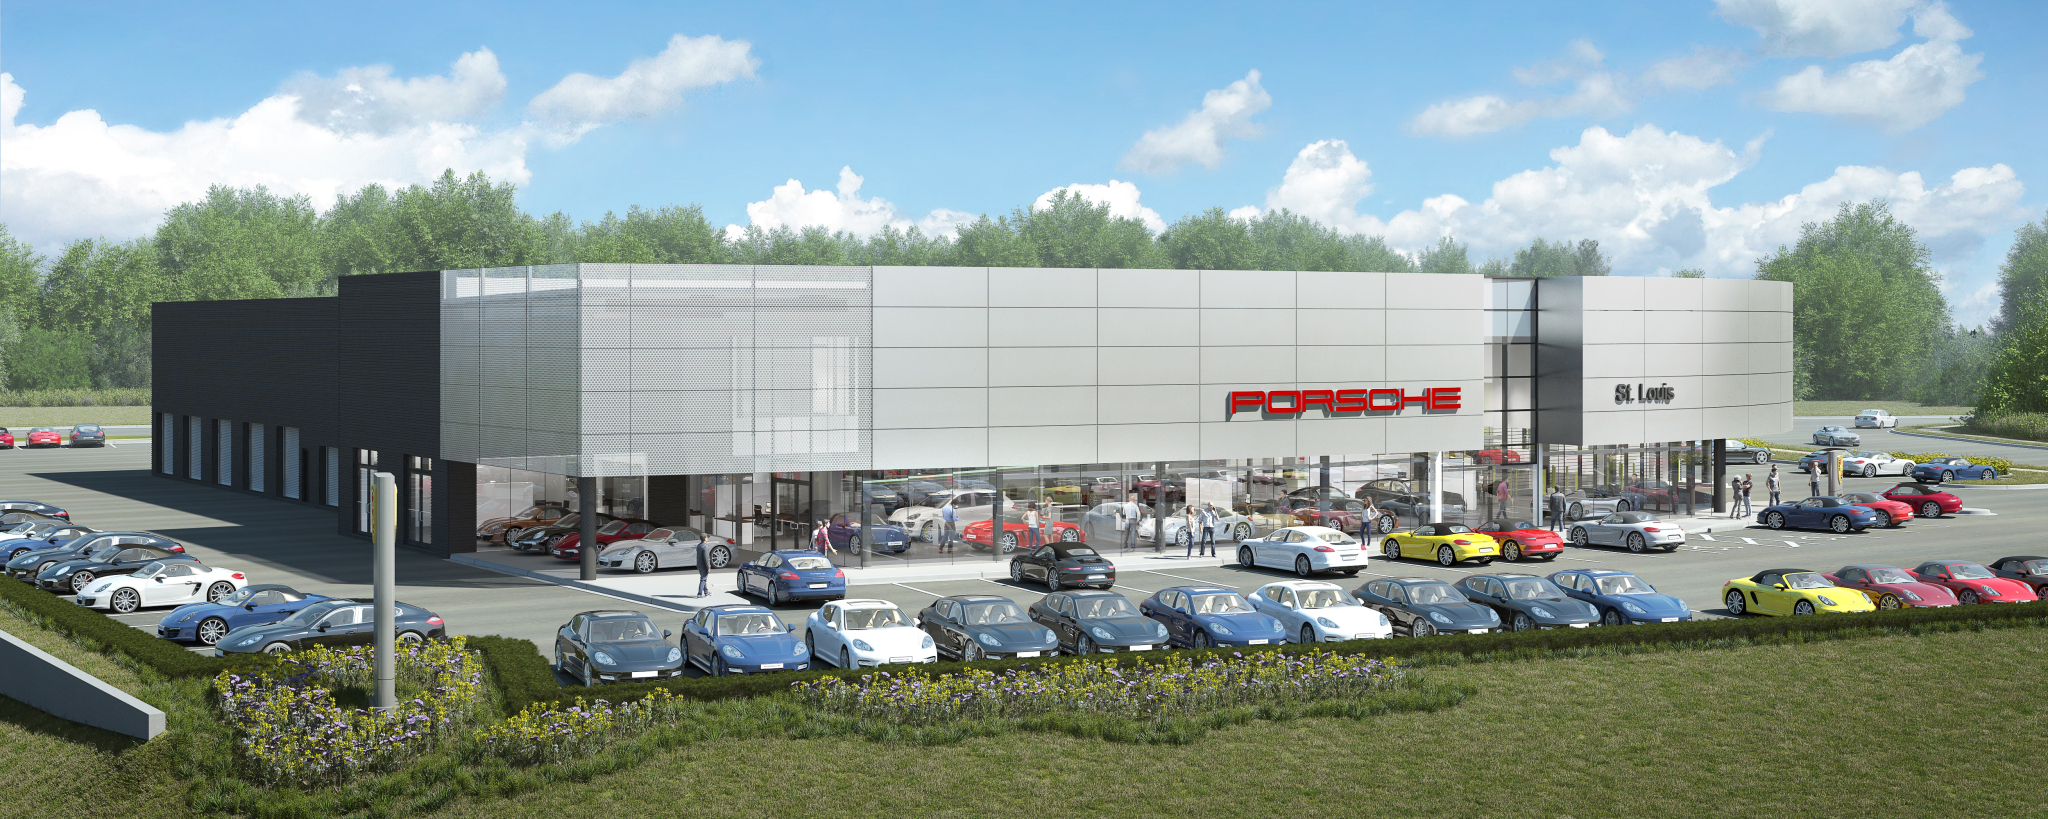 porsche st. louis - update on the new porsche st. louis building